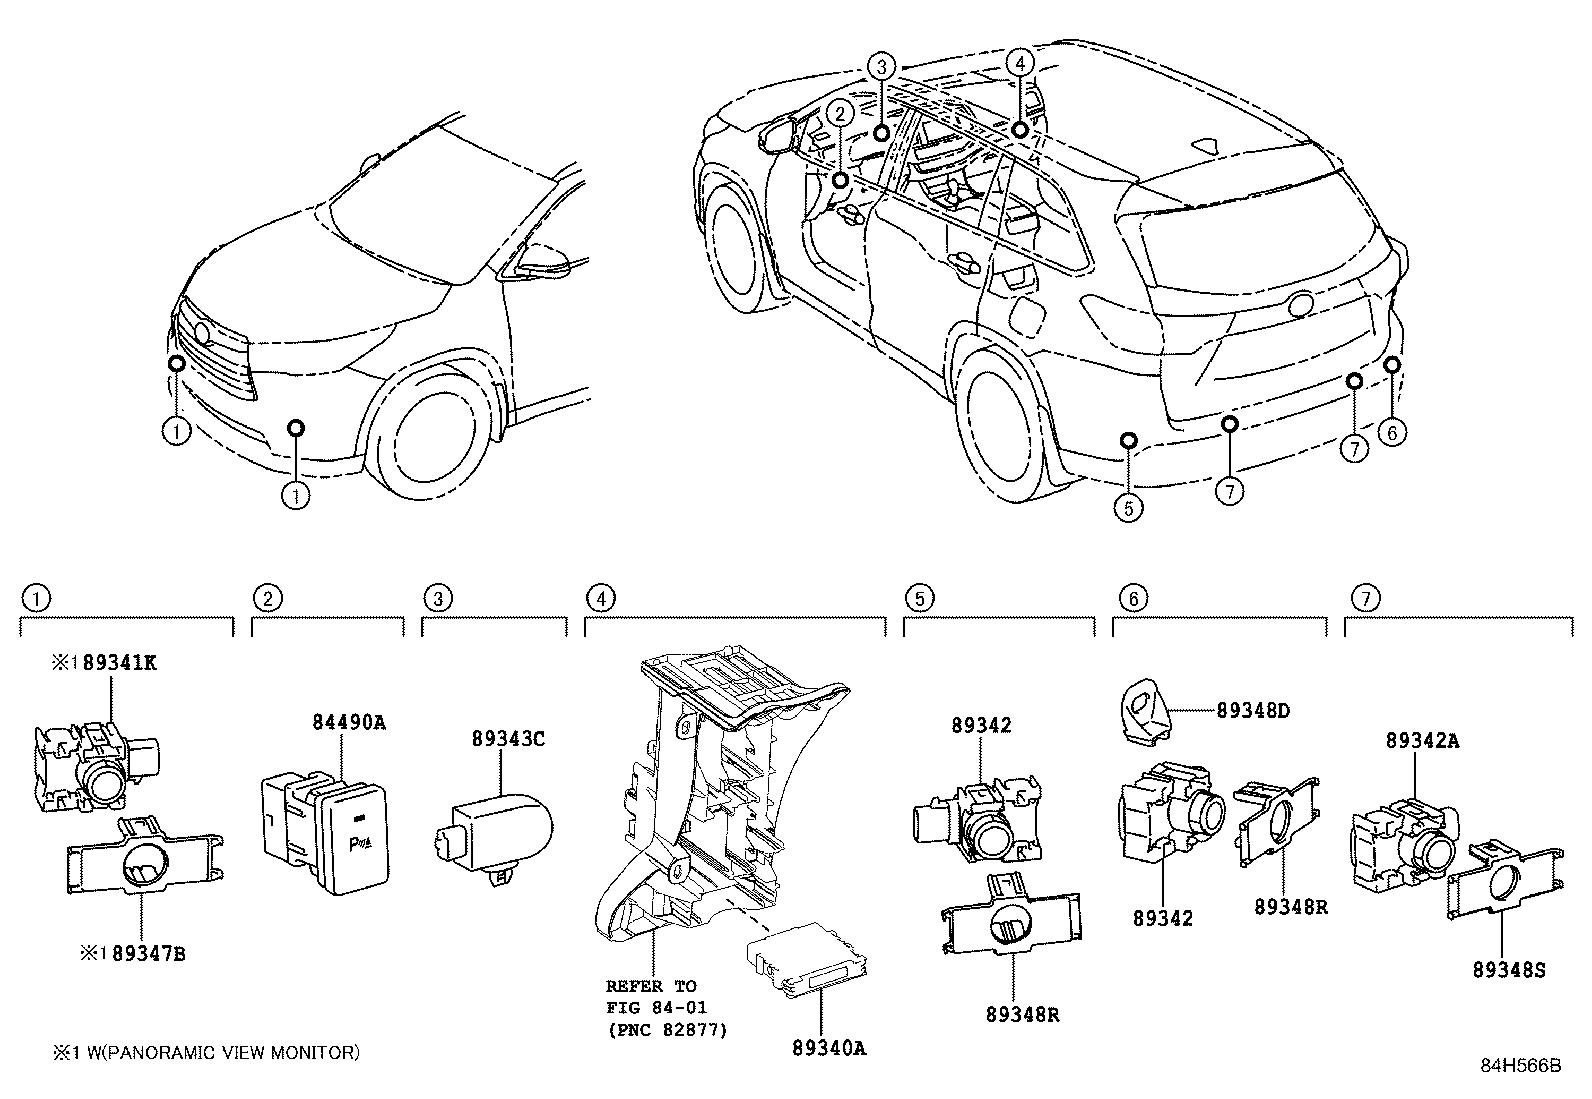 Toyota Highlander Computer Assembly Clearance Warning